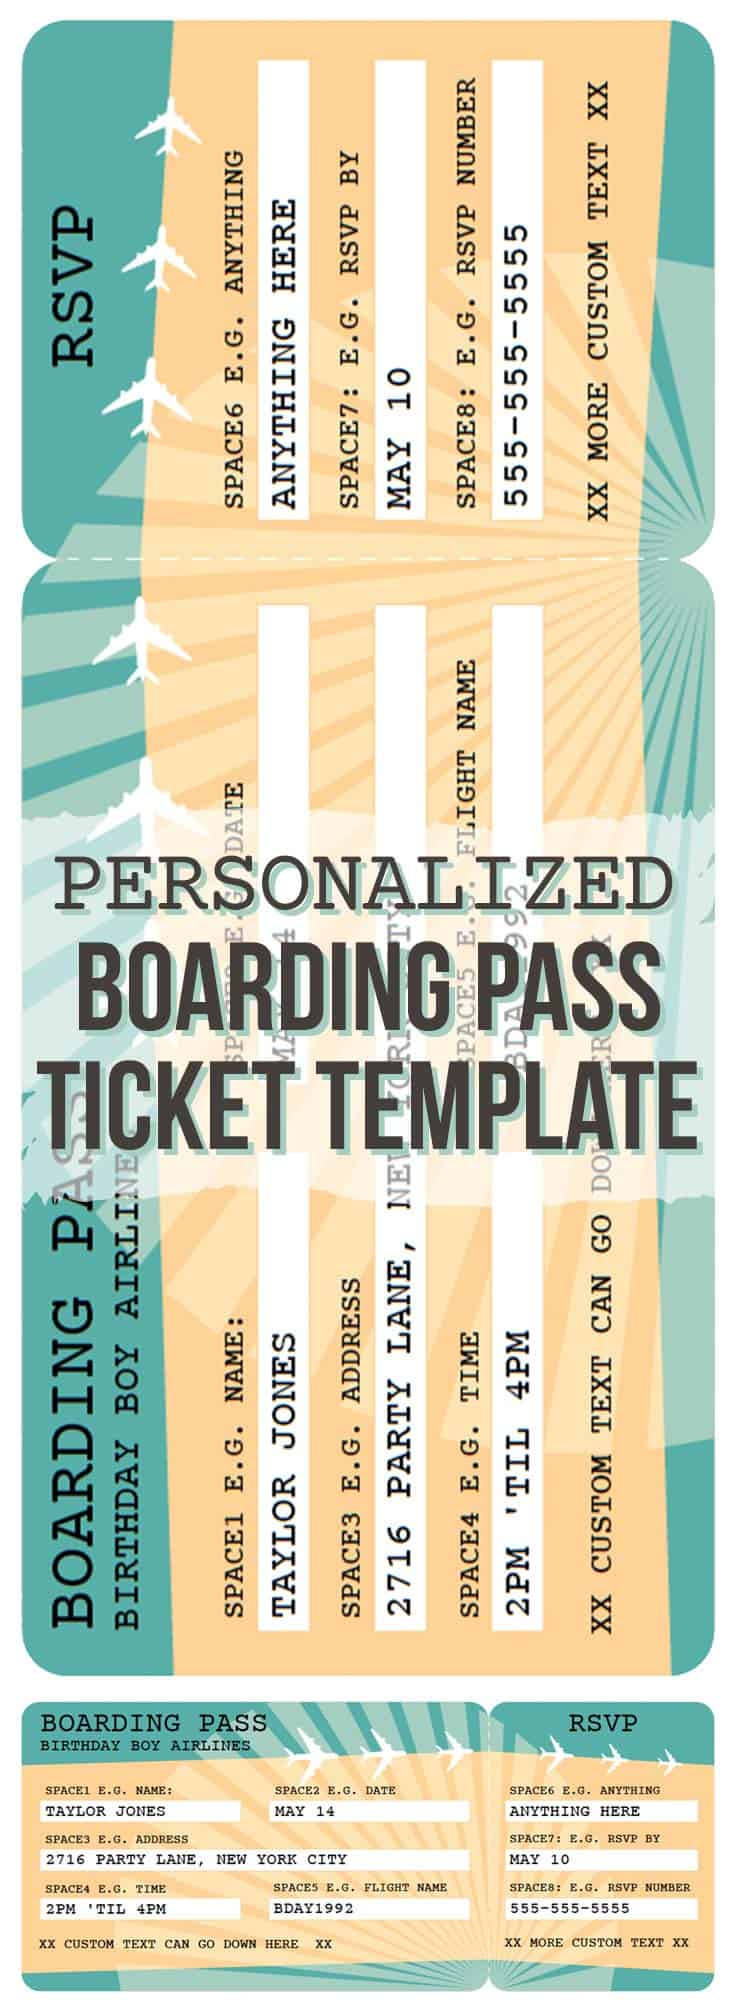 Printable Airline Boarding Pass Template | Free Printables ...